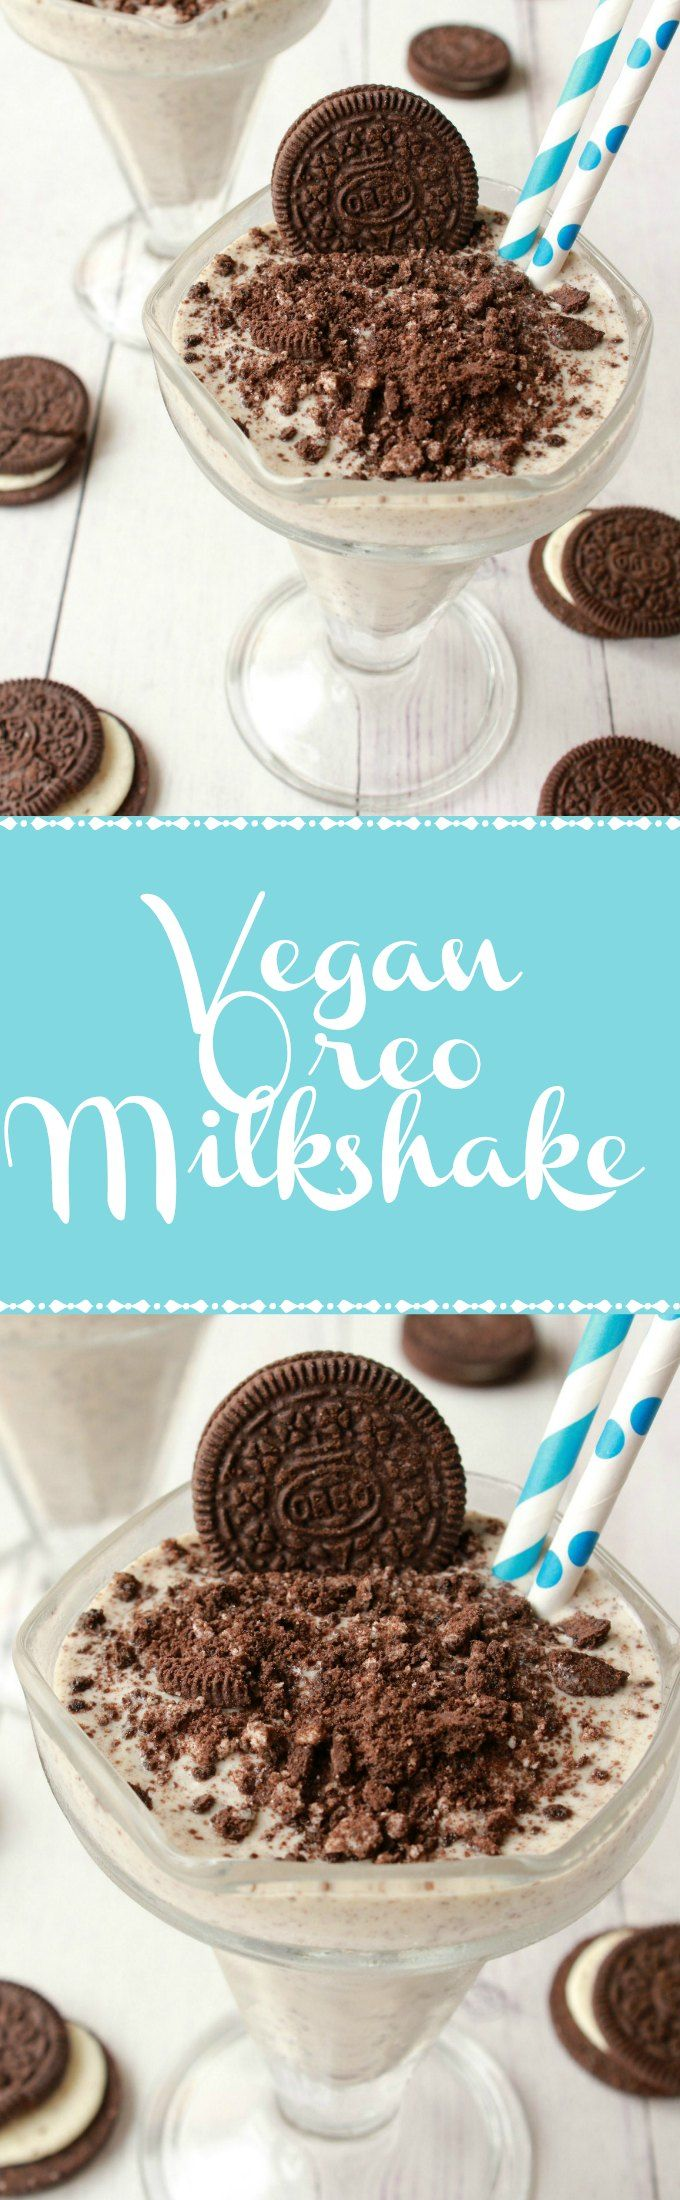 Super Easy 3-Ingredient Vegan Oreo Milkshake. Ready in 5 minutes! Vegan | Vegan Dessert | Vegan Milkshake | Vegan Food | Vegan Recipes